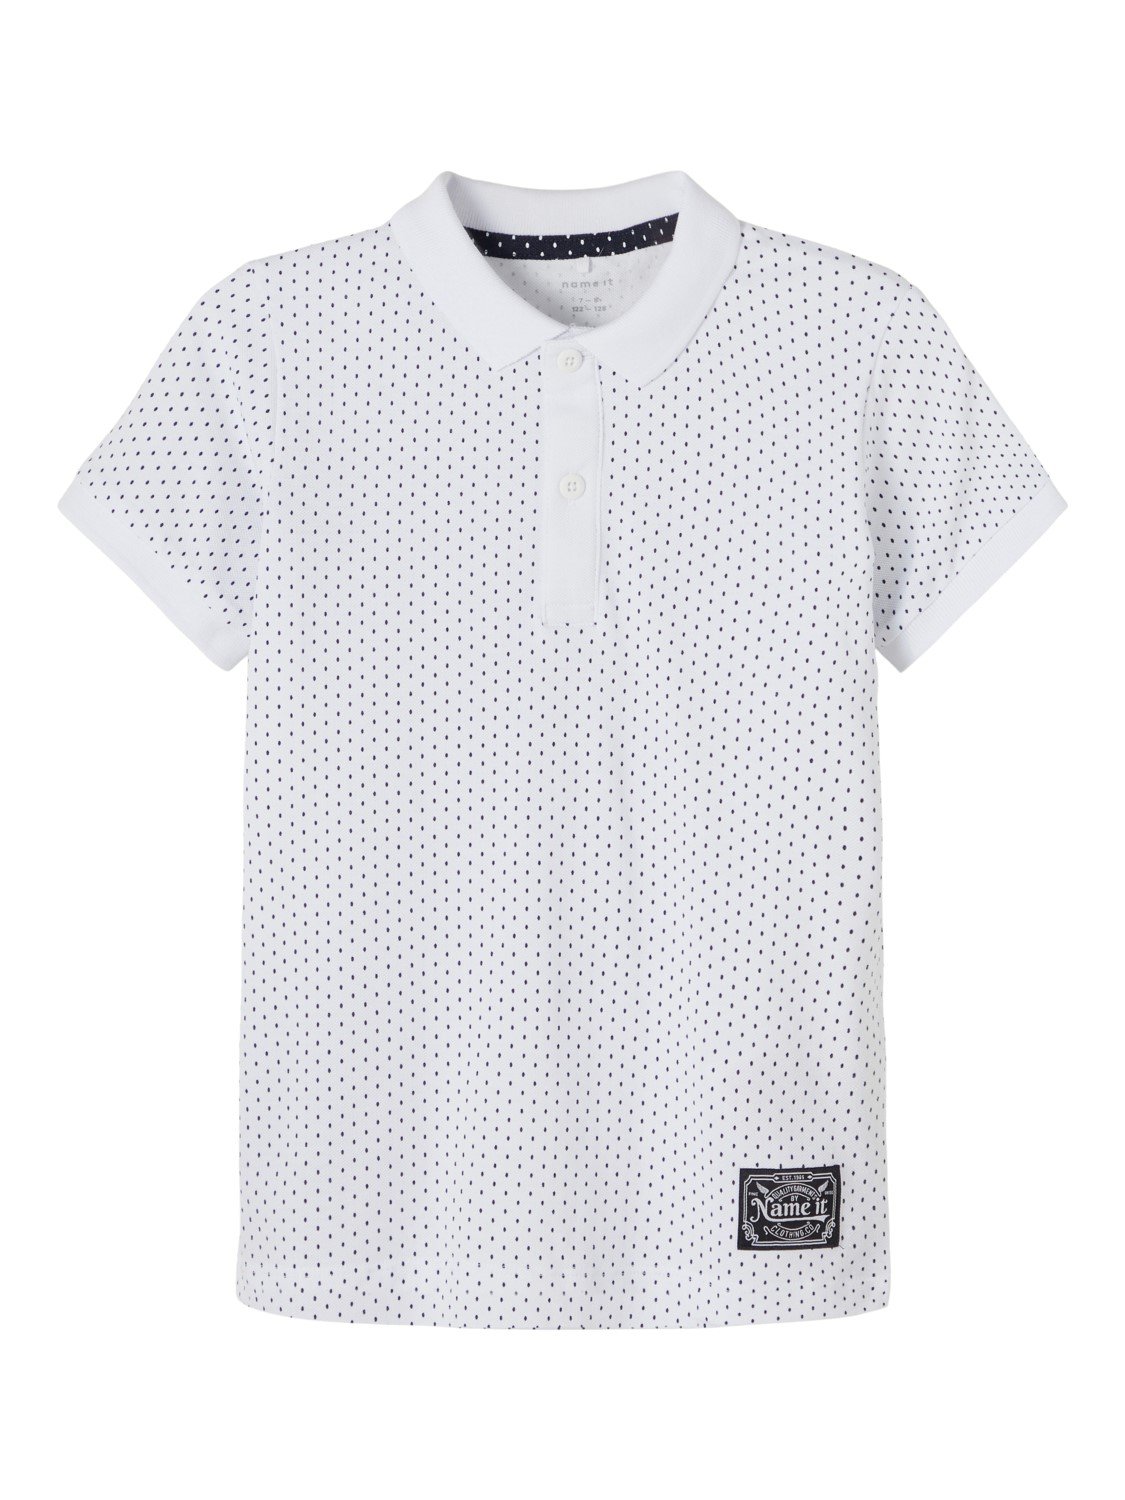 Tito polo, bright white